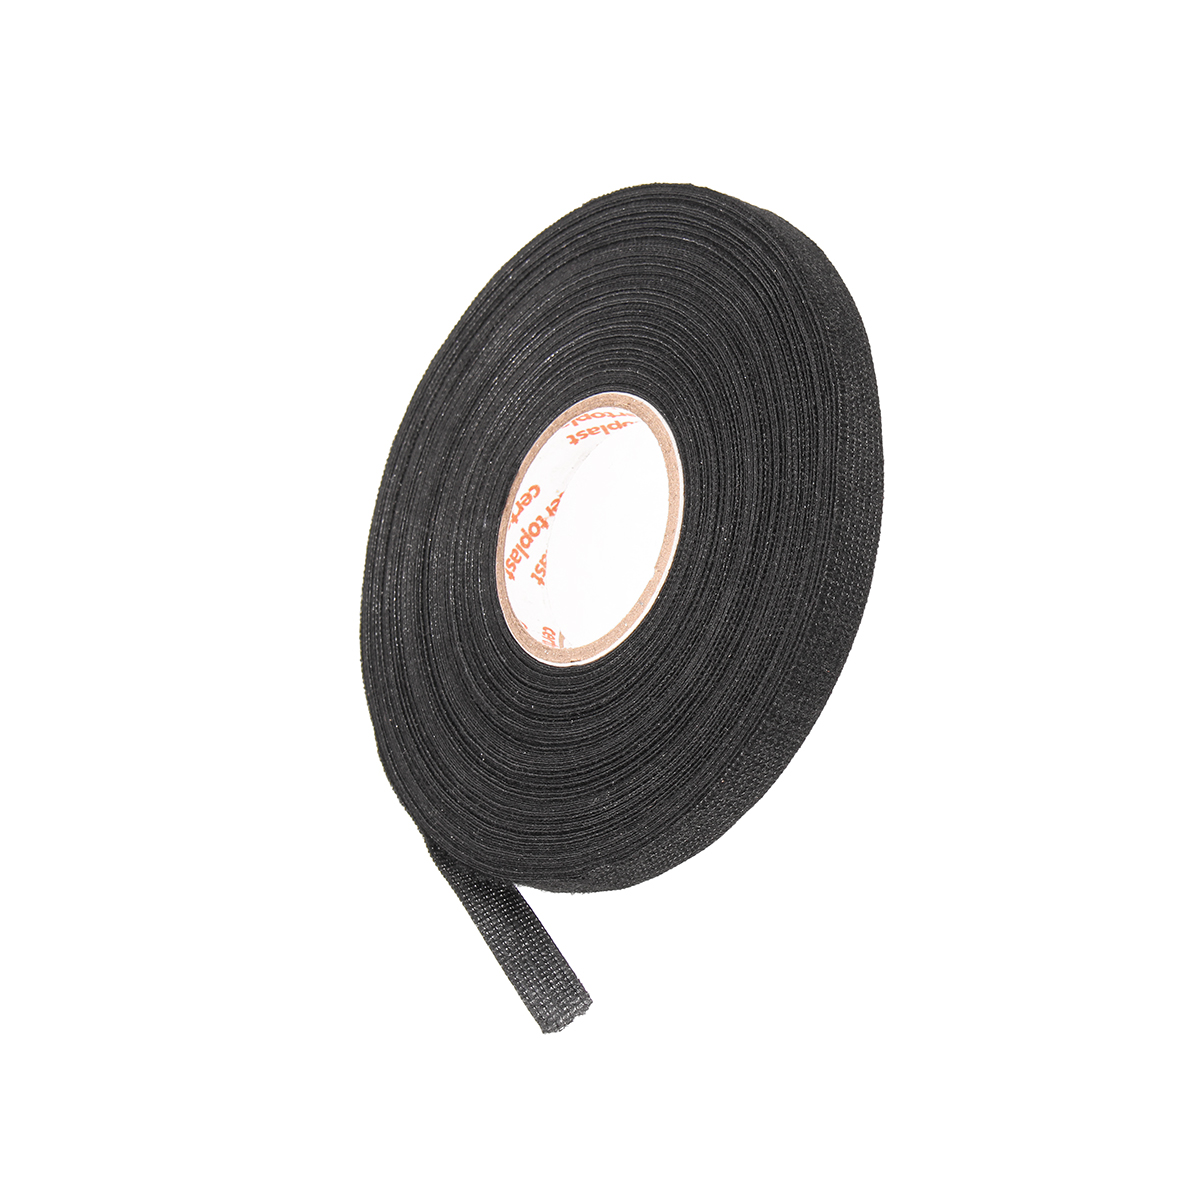 Mtgather Natural Rubber Car Wiring Loom Harness Adhesive Cloth Black Tape Fabric Cable 9mm X 25m In Sealers From Home Improvement On